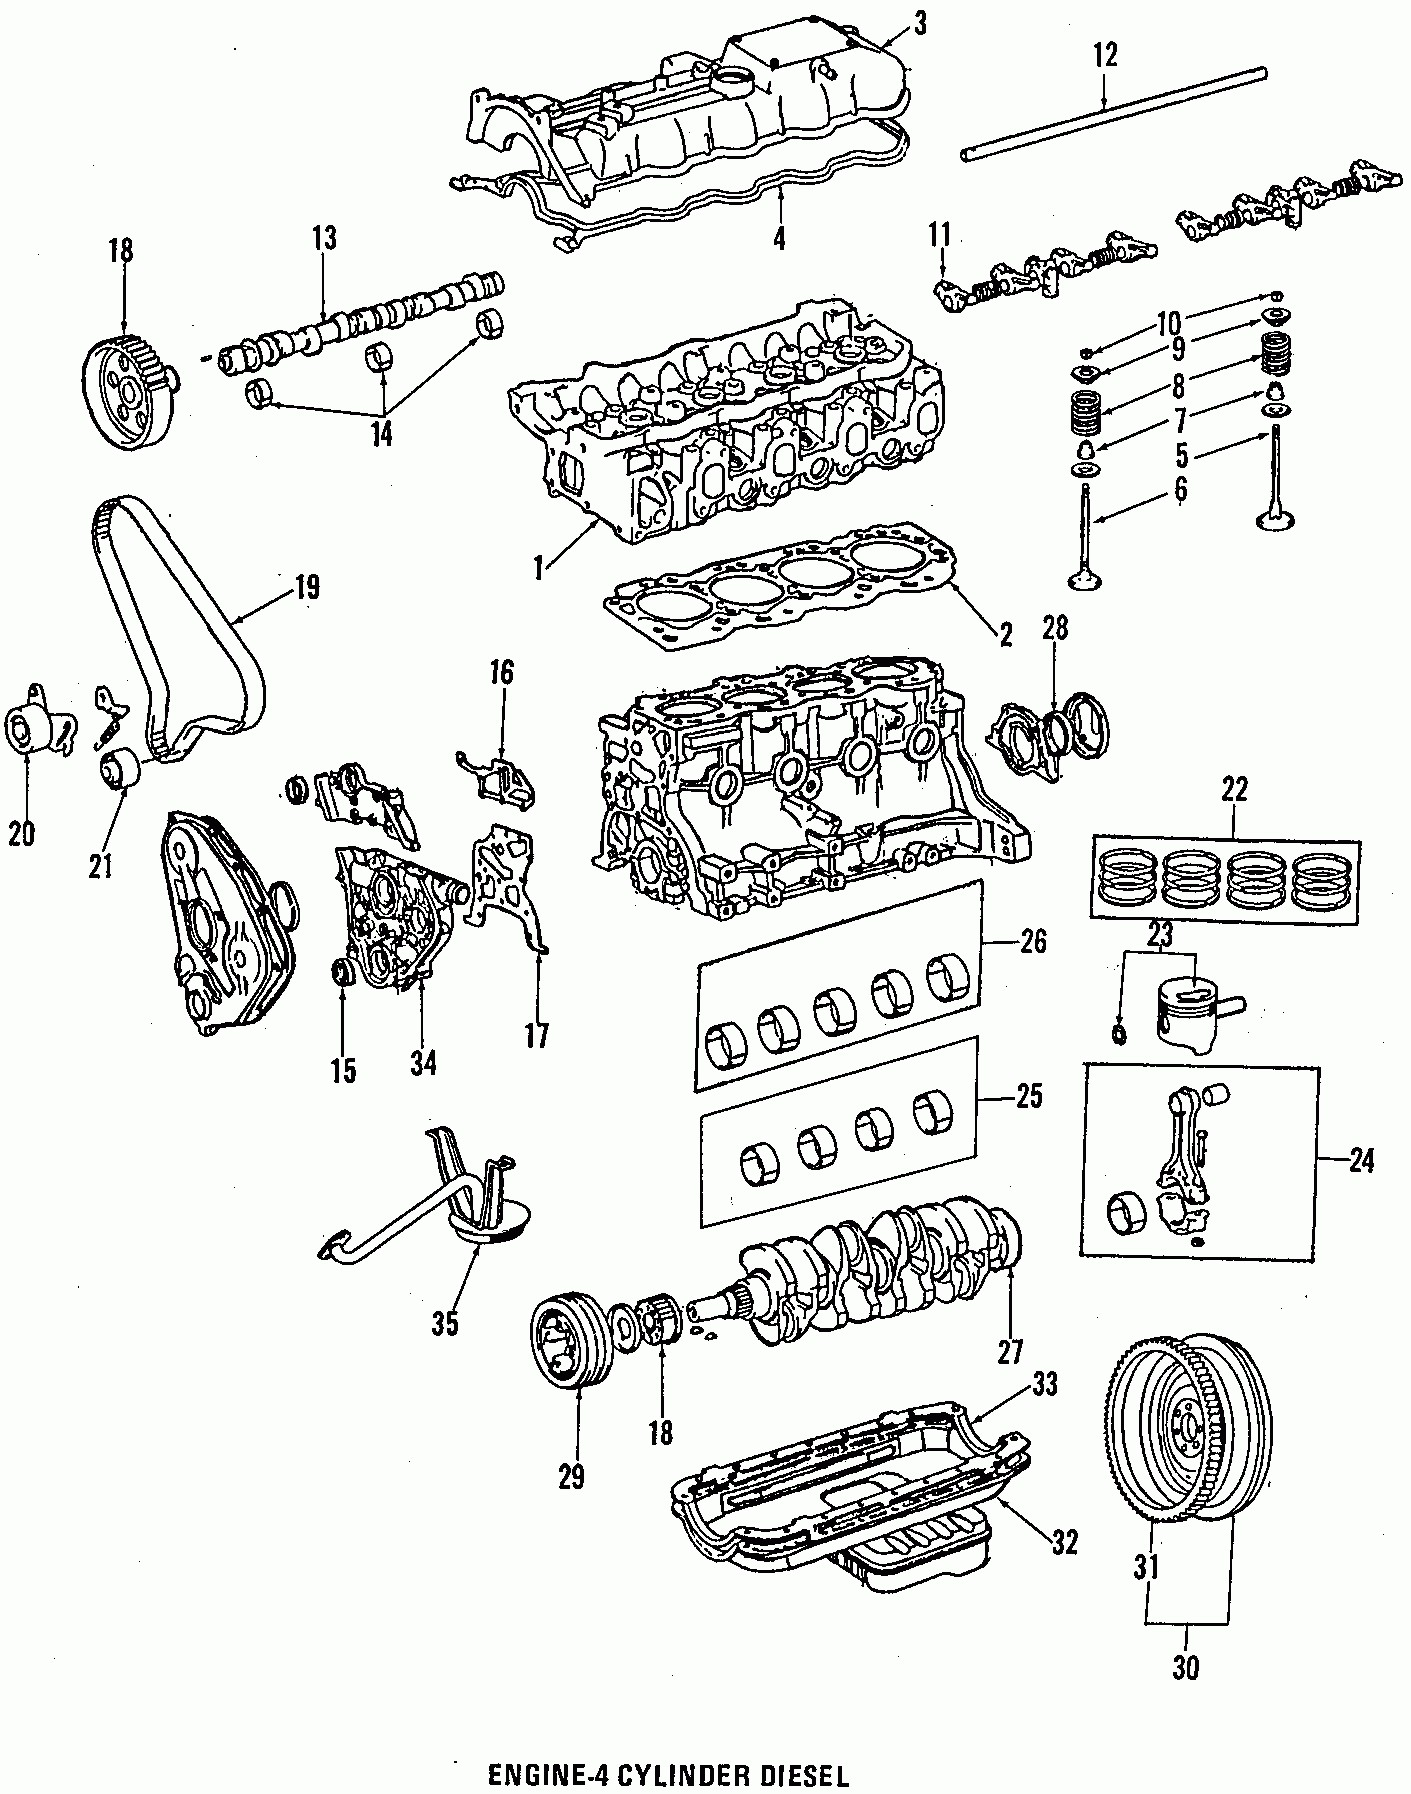 2004 toyota highlander parts diagram